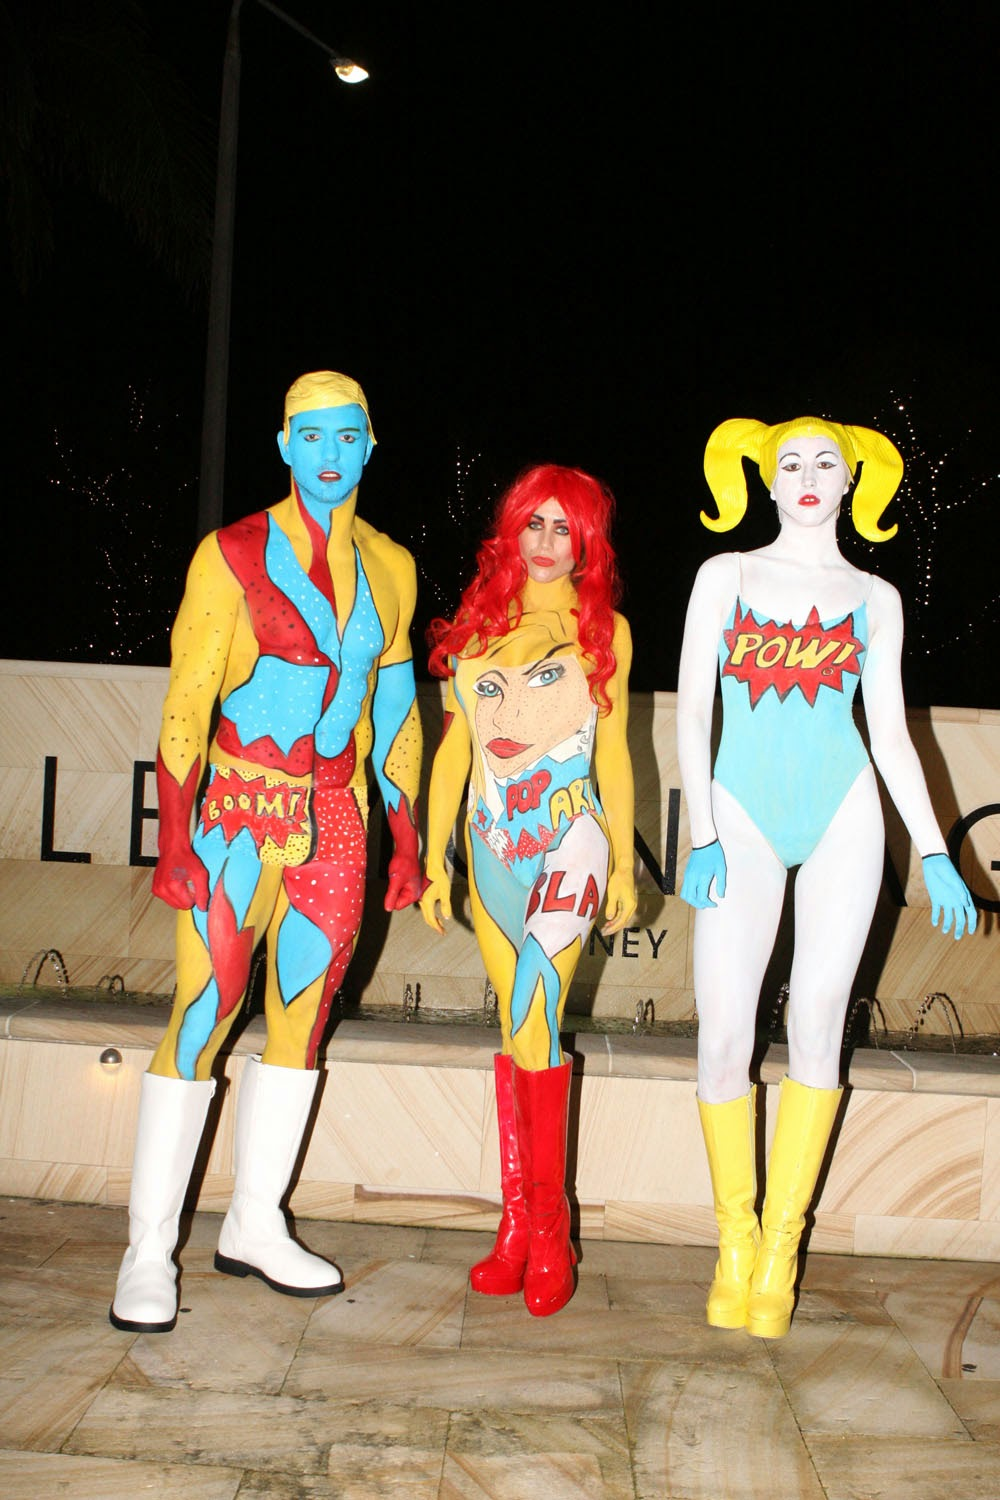 Bodypainting Australia News Pop Art Body Painting